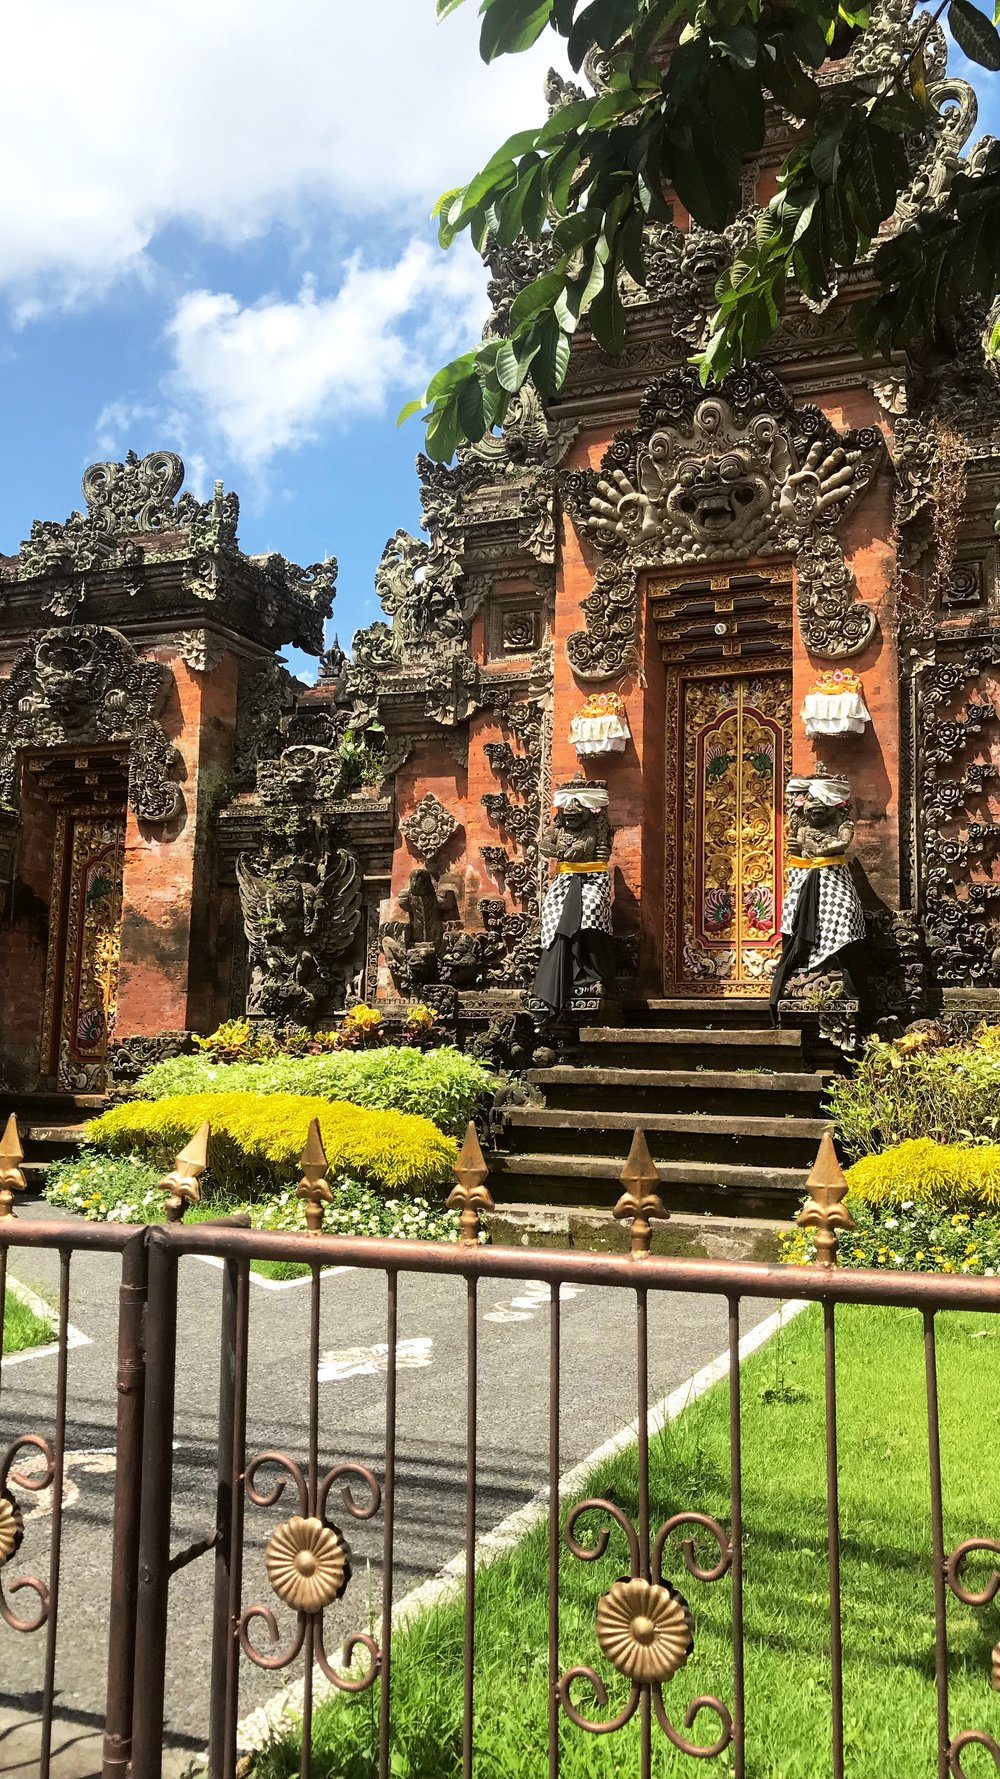 Entrance to a home in Ubud, Indonesia.